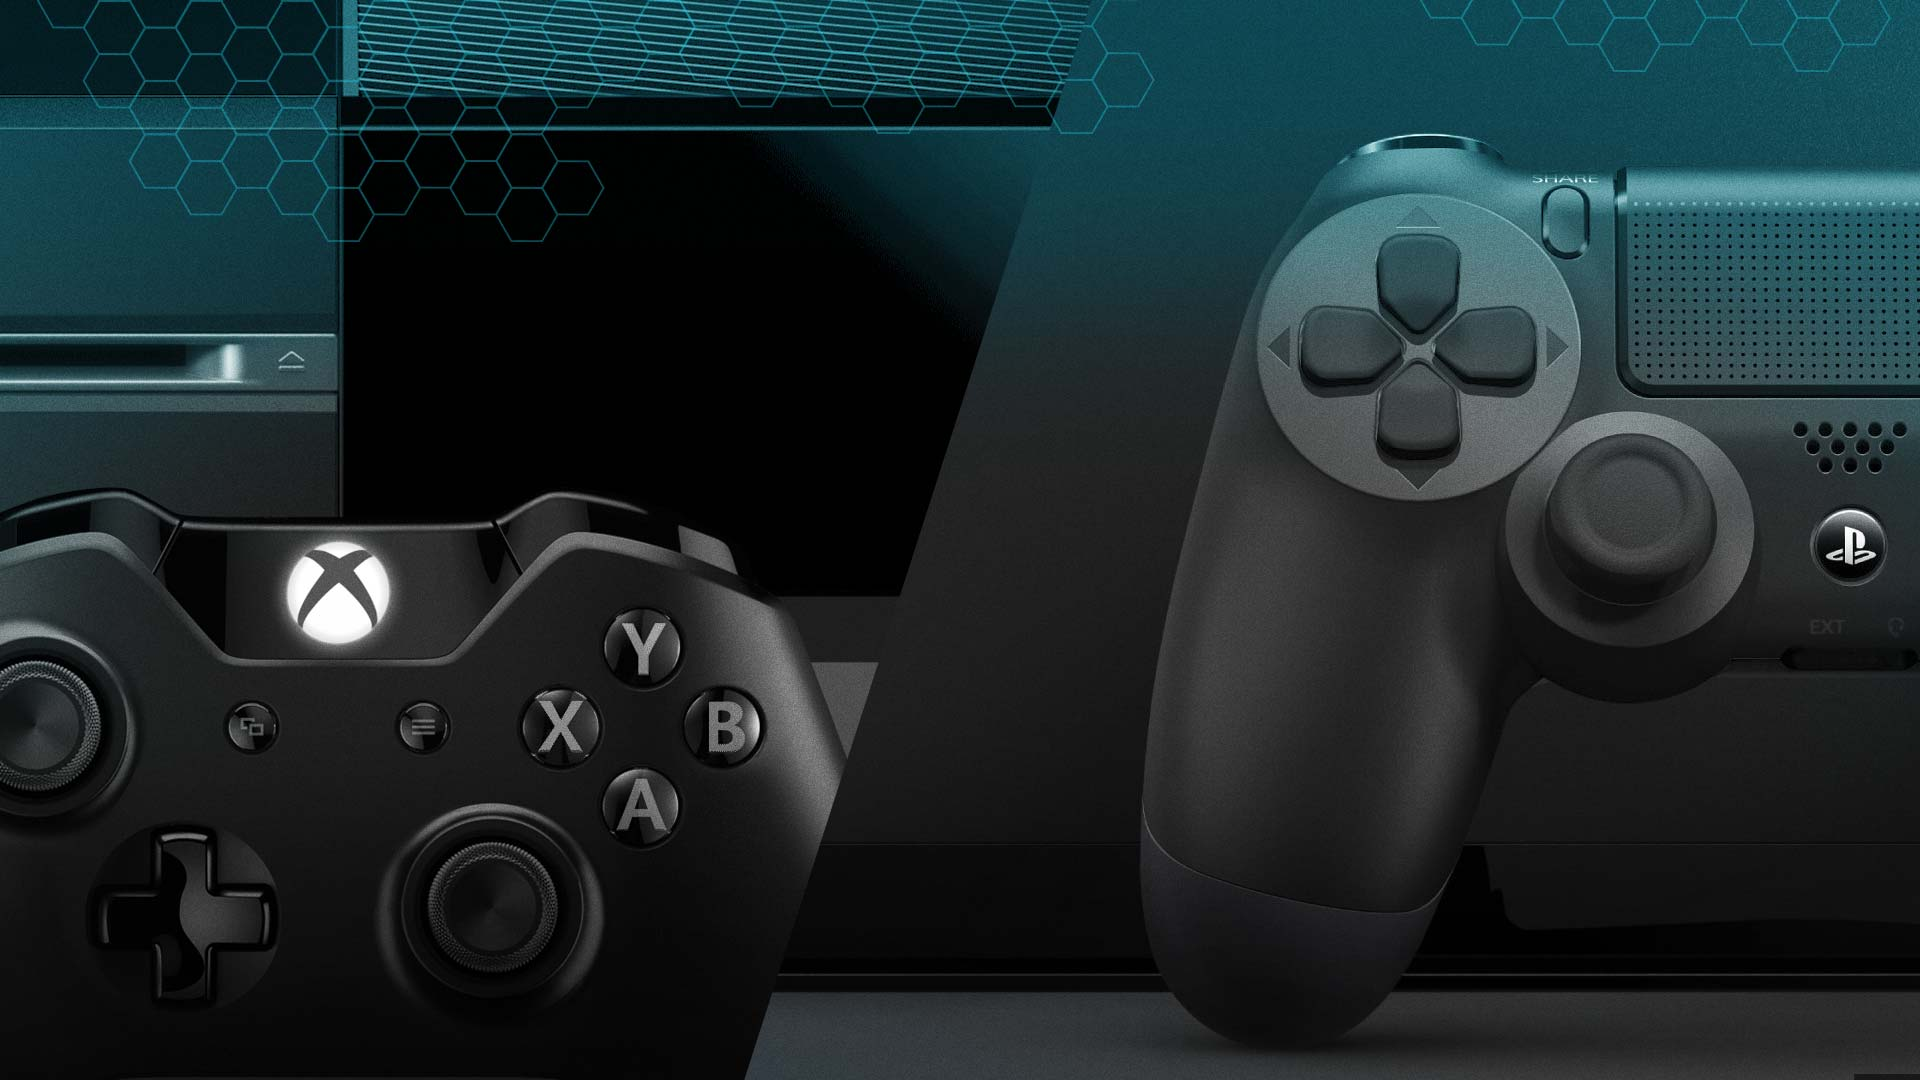 Artistry in Games xboxone-ps4-graphics-feature Why The Xbox One vs PS4 Graphics Row Is More Than Just a Fanwar Opinion